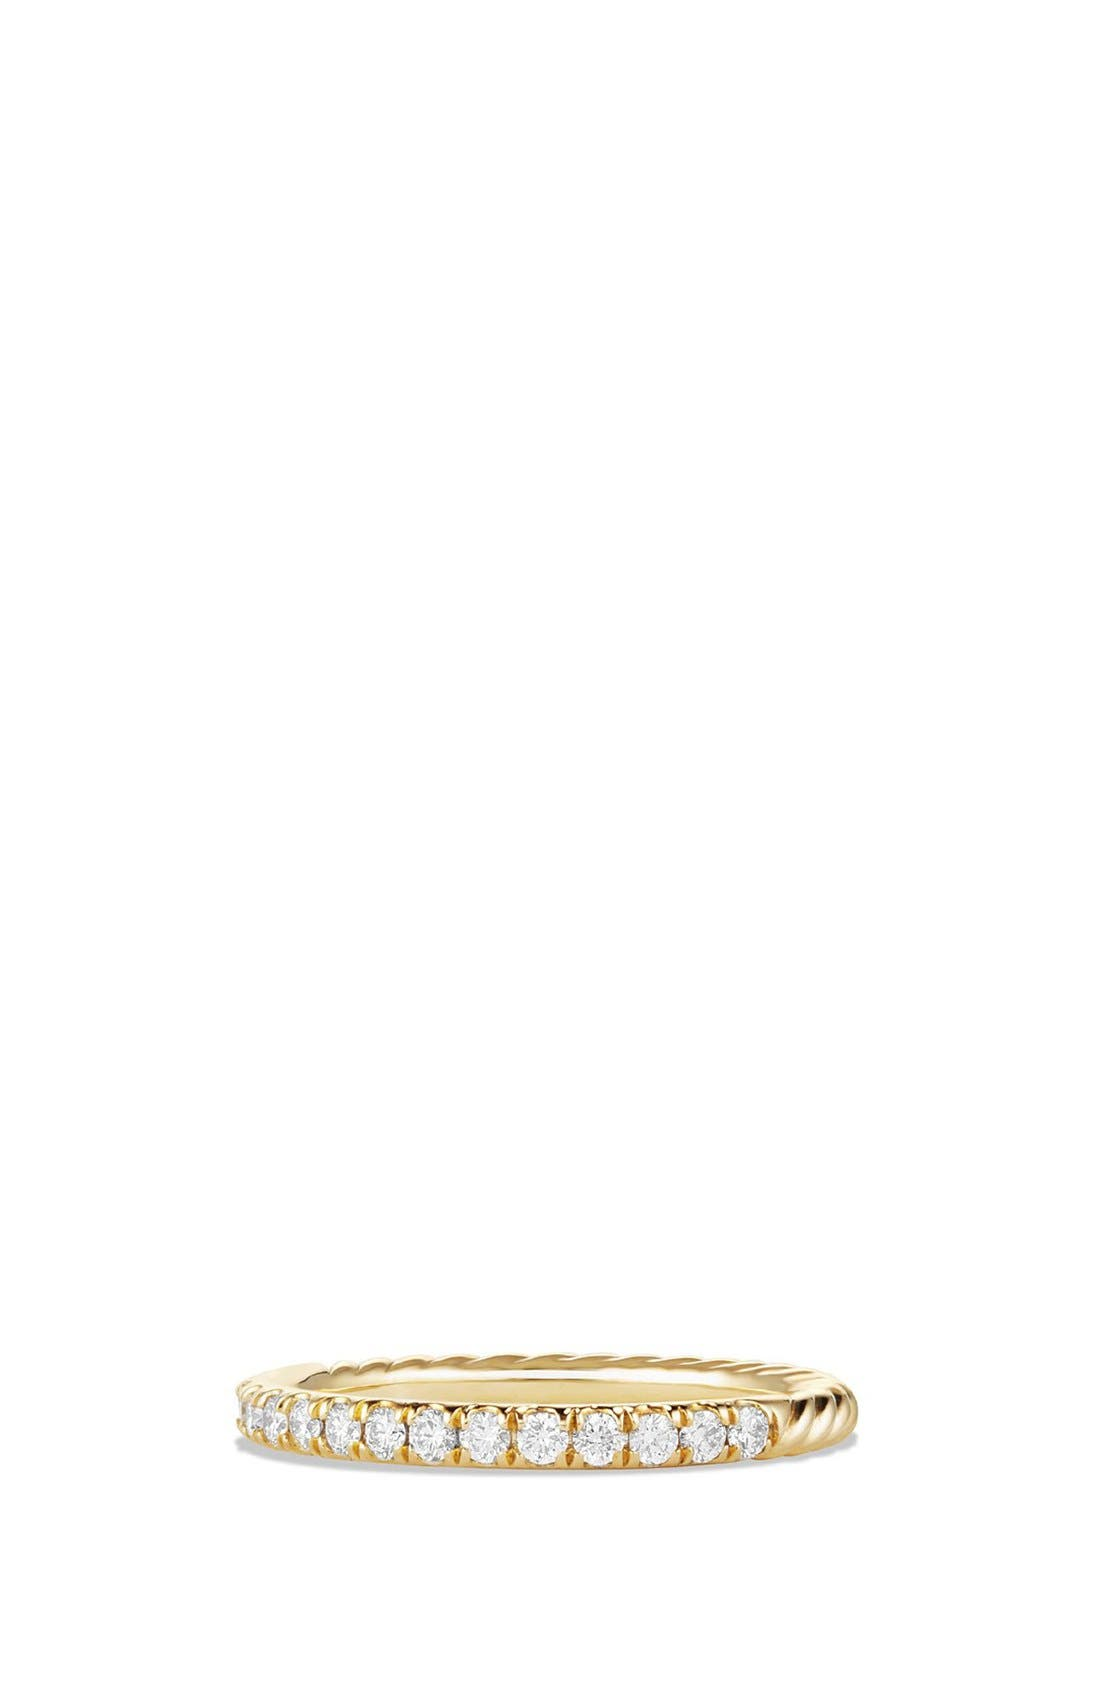 'Cable' Ring with Diamonds in 18K Gold,                             Main thumbnail 1, color,                             GOLD